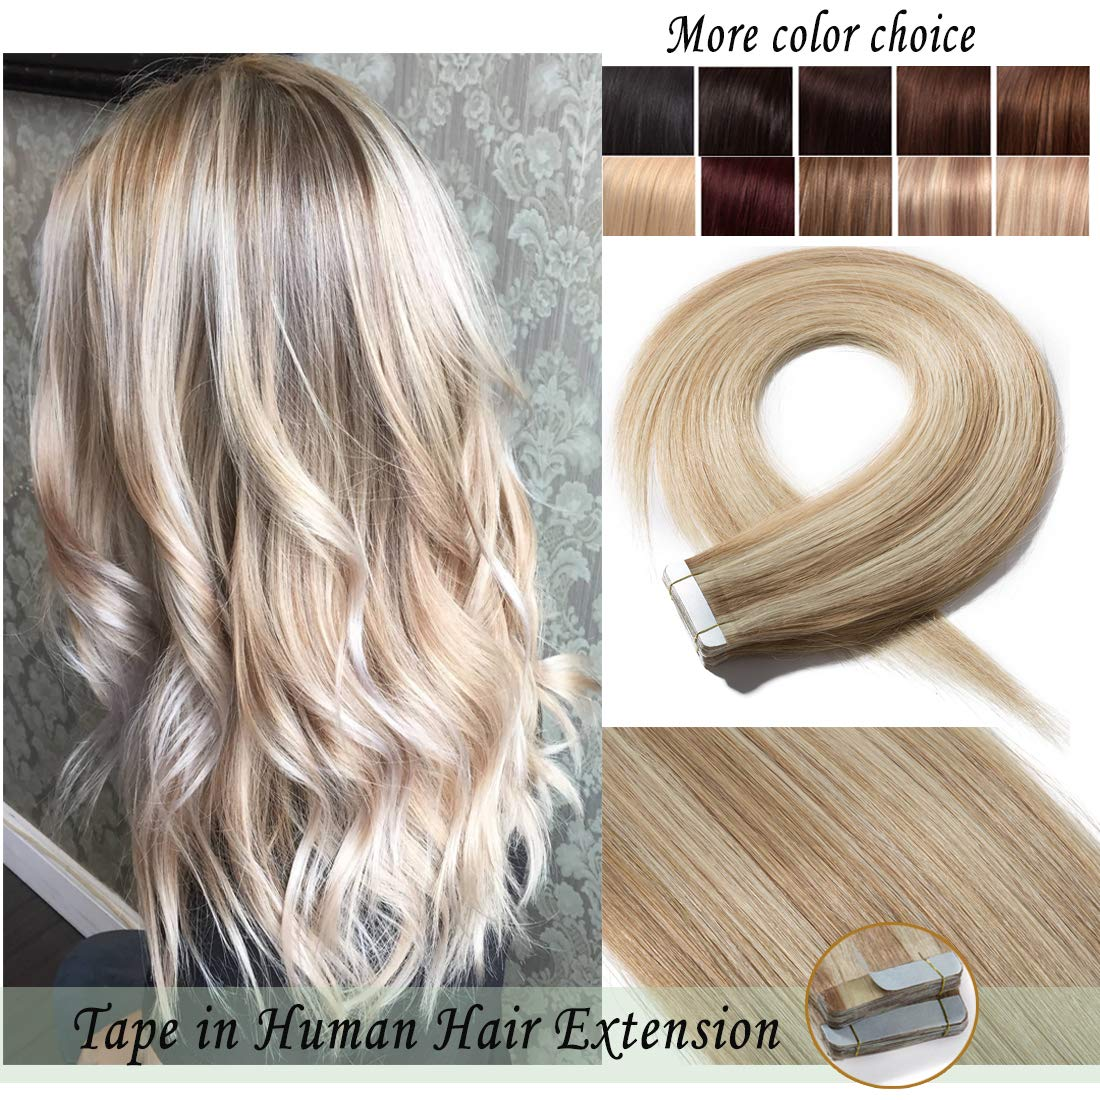 S-noilite Tape in Human Hair Extension for Women Glue in Remy Human Hair Piece Seamless Skin Weft Invisible Double Tape Full Head Straight 40 Pcs 100 Gram 16Inch #18P613 Ash Blonde&Bleach Blonde by S-noilite